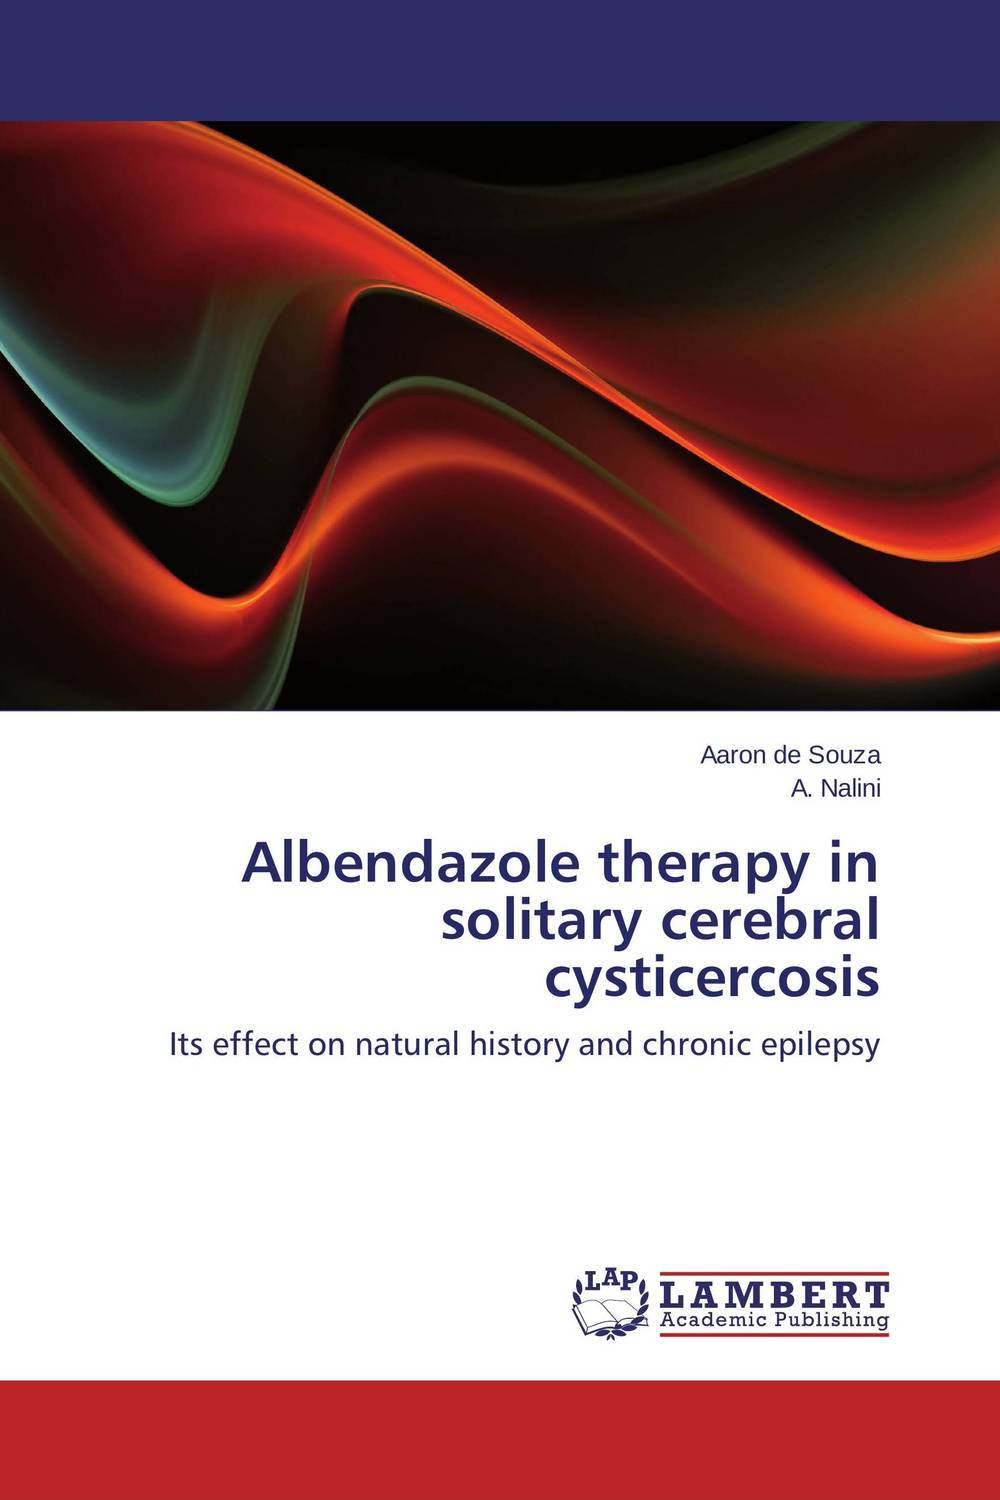 Albendazole therapy in solitary cerebral cysticercosis prevalence of bovine cysticercosis taeniasis at yirgalem ethiopia